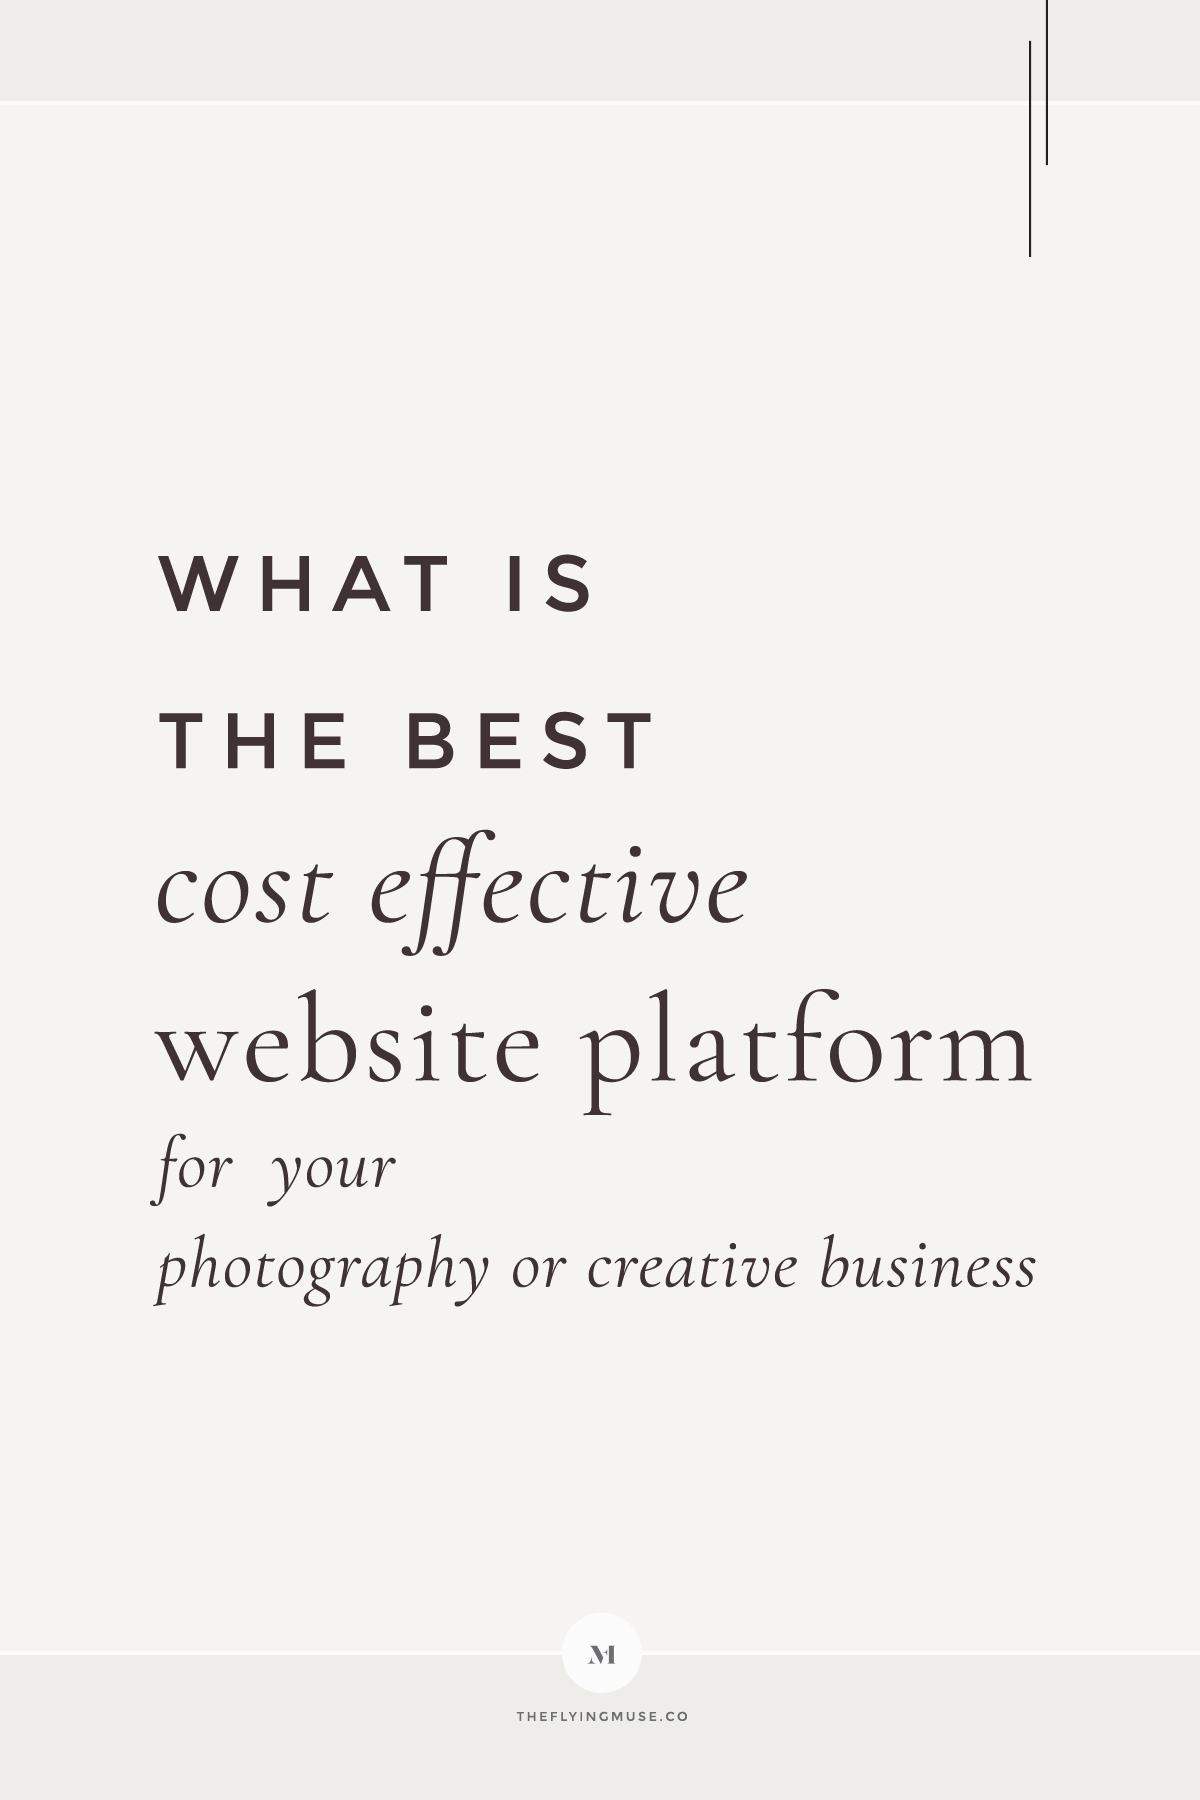 What is the best cost effective website platform for your photography or creative business